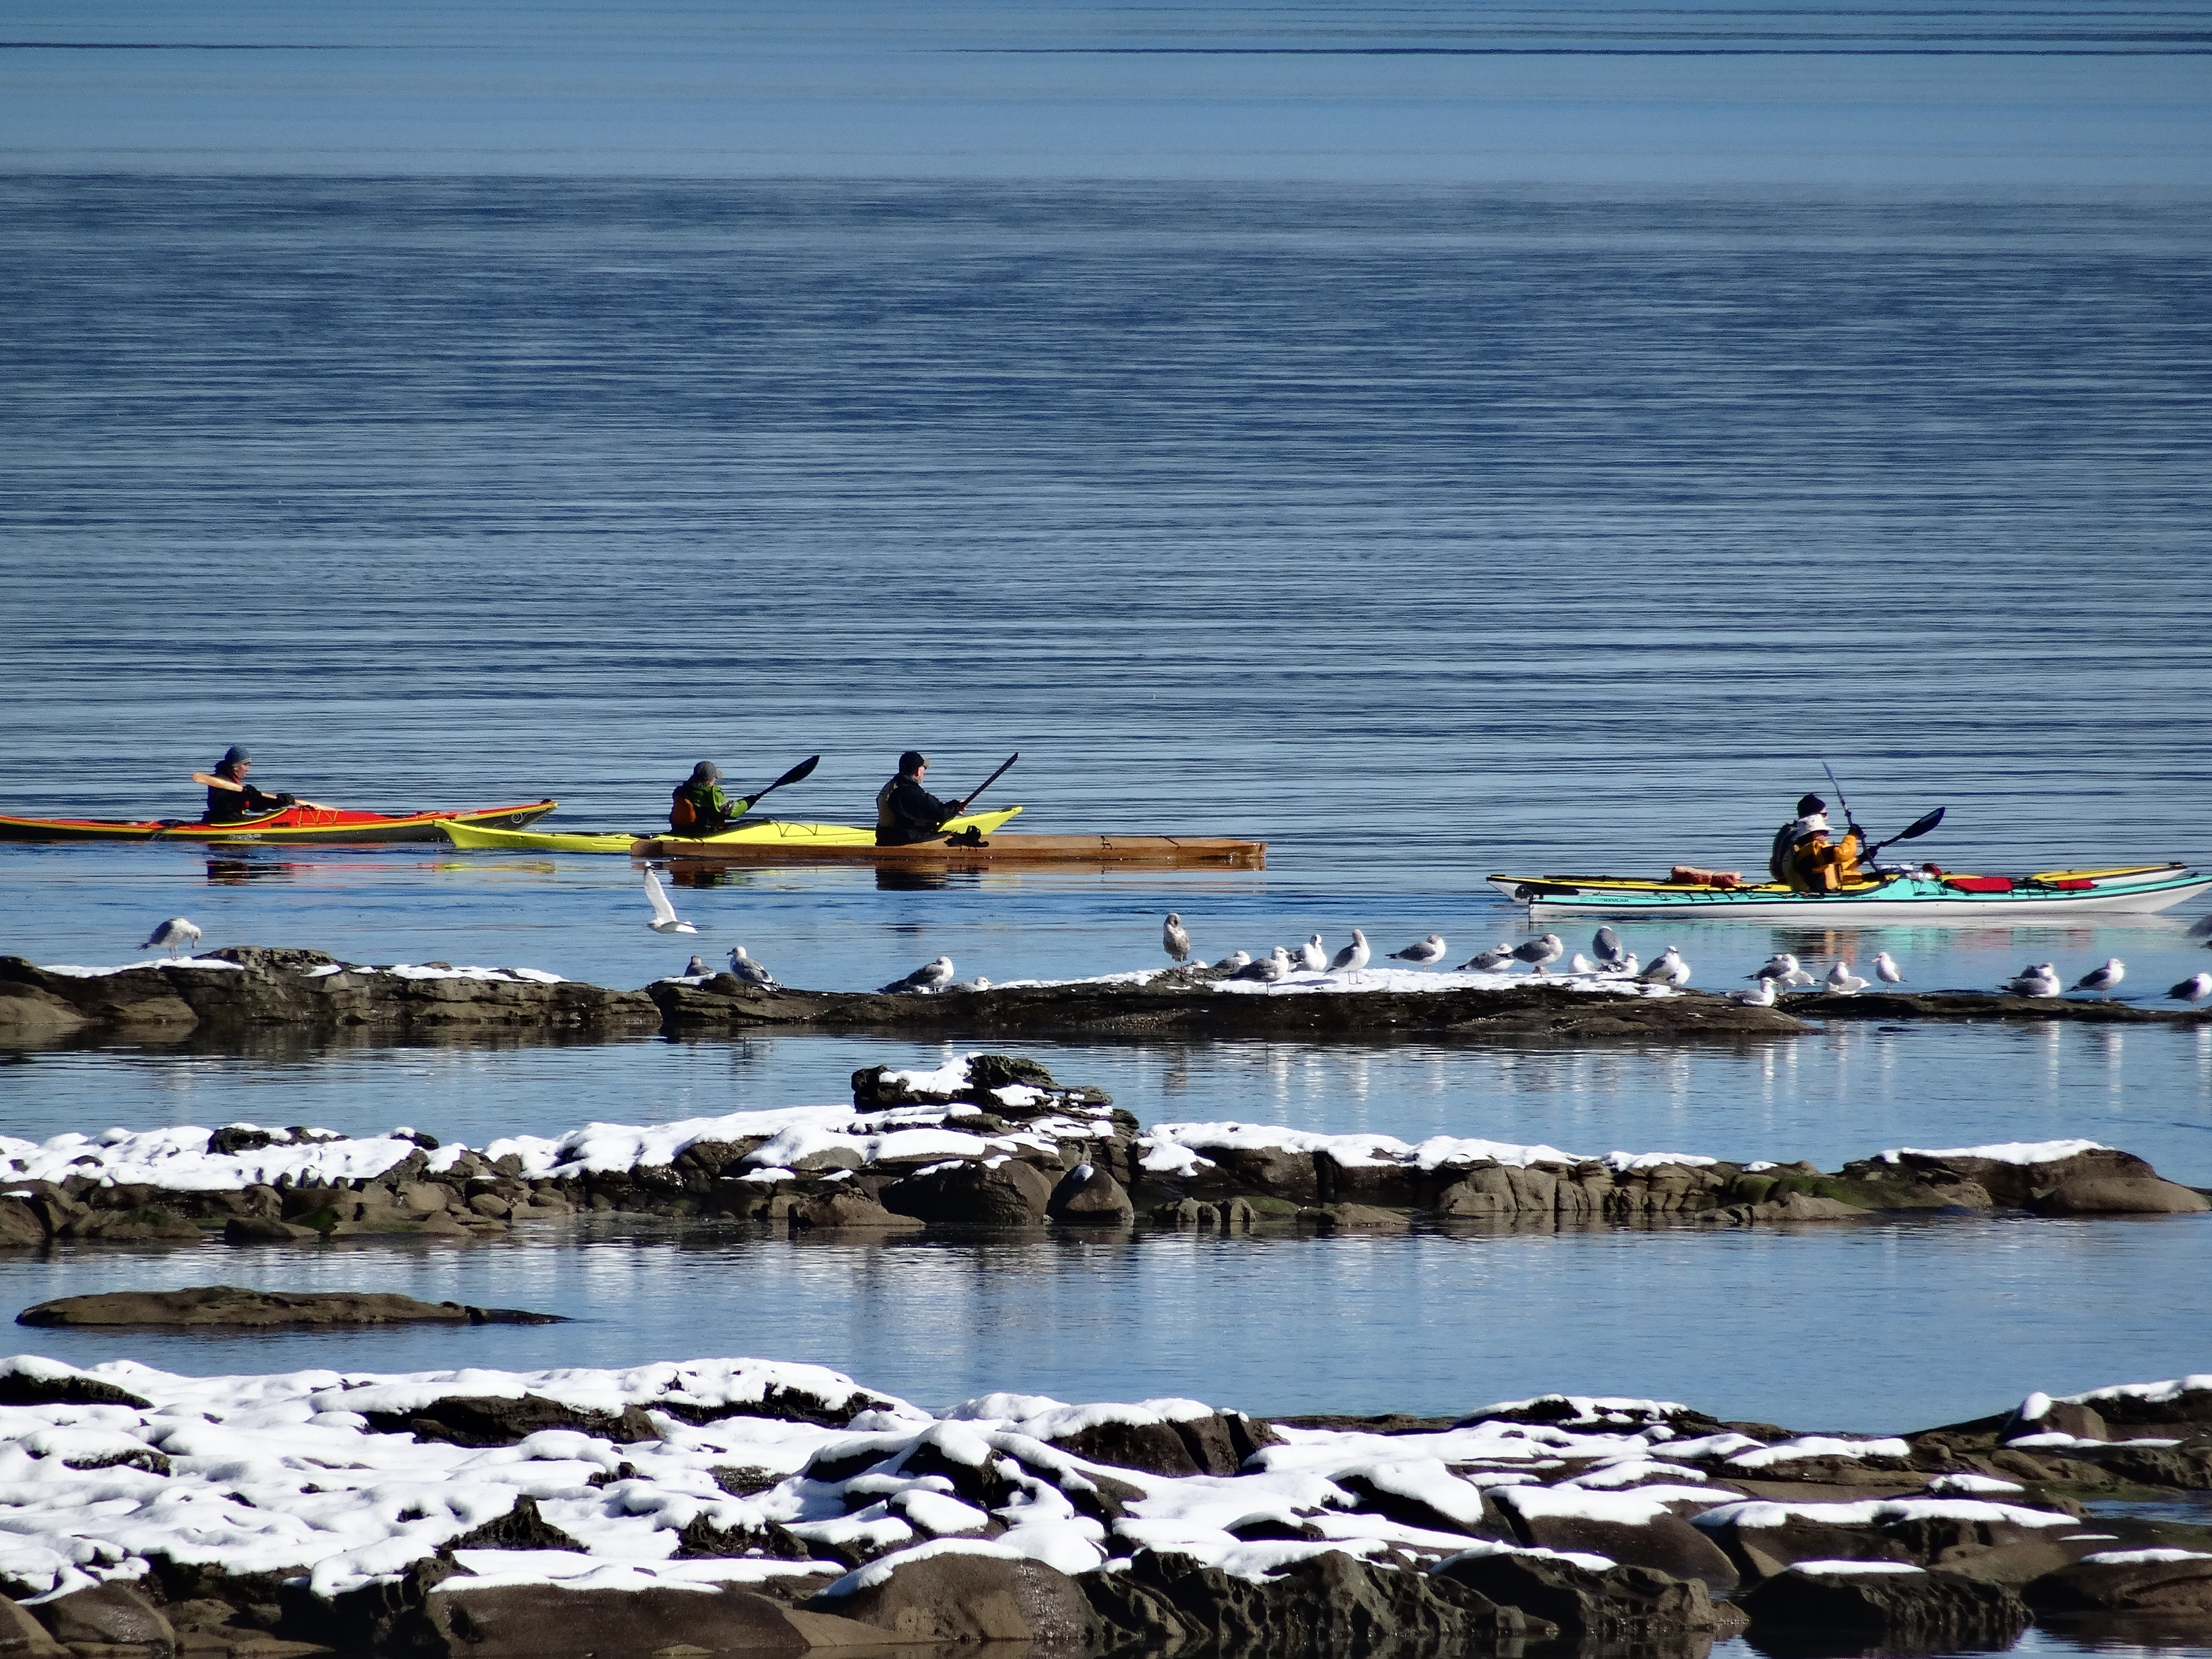 kayaking with snow and seagulls